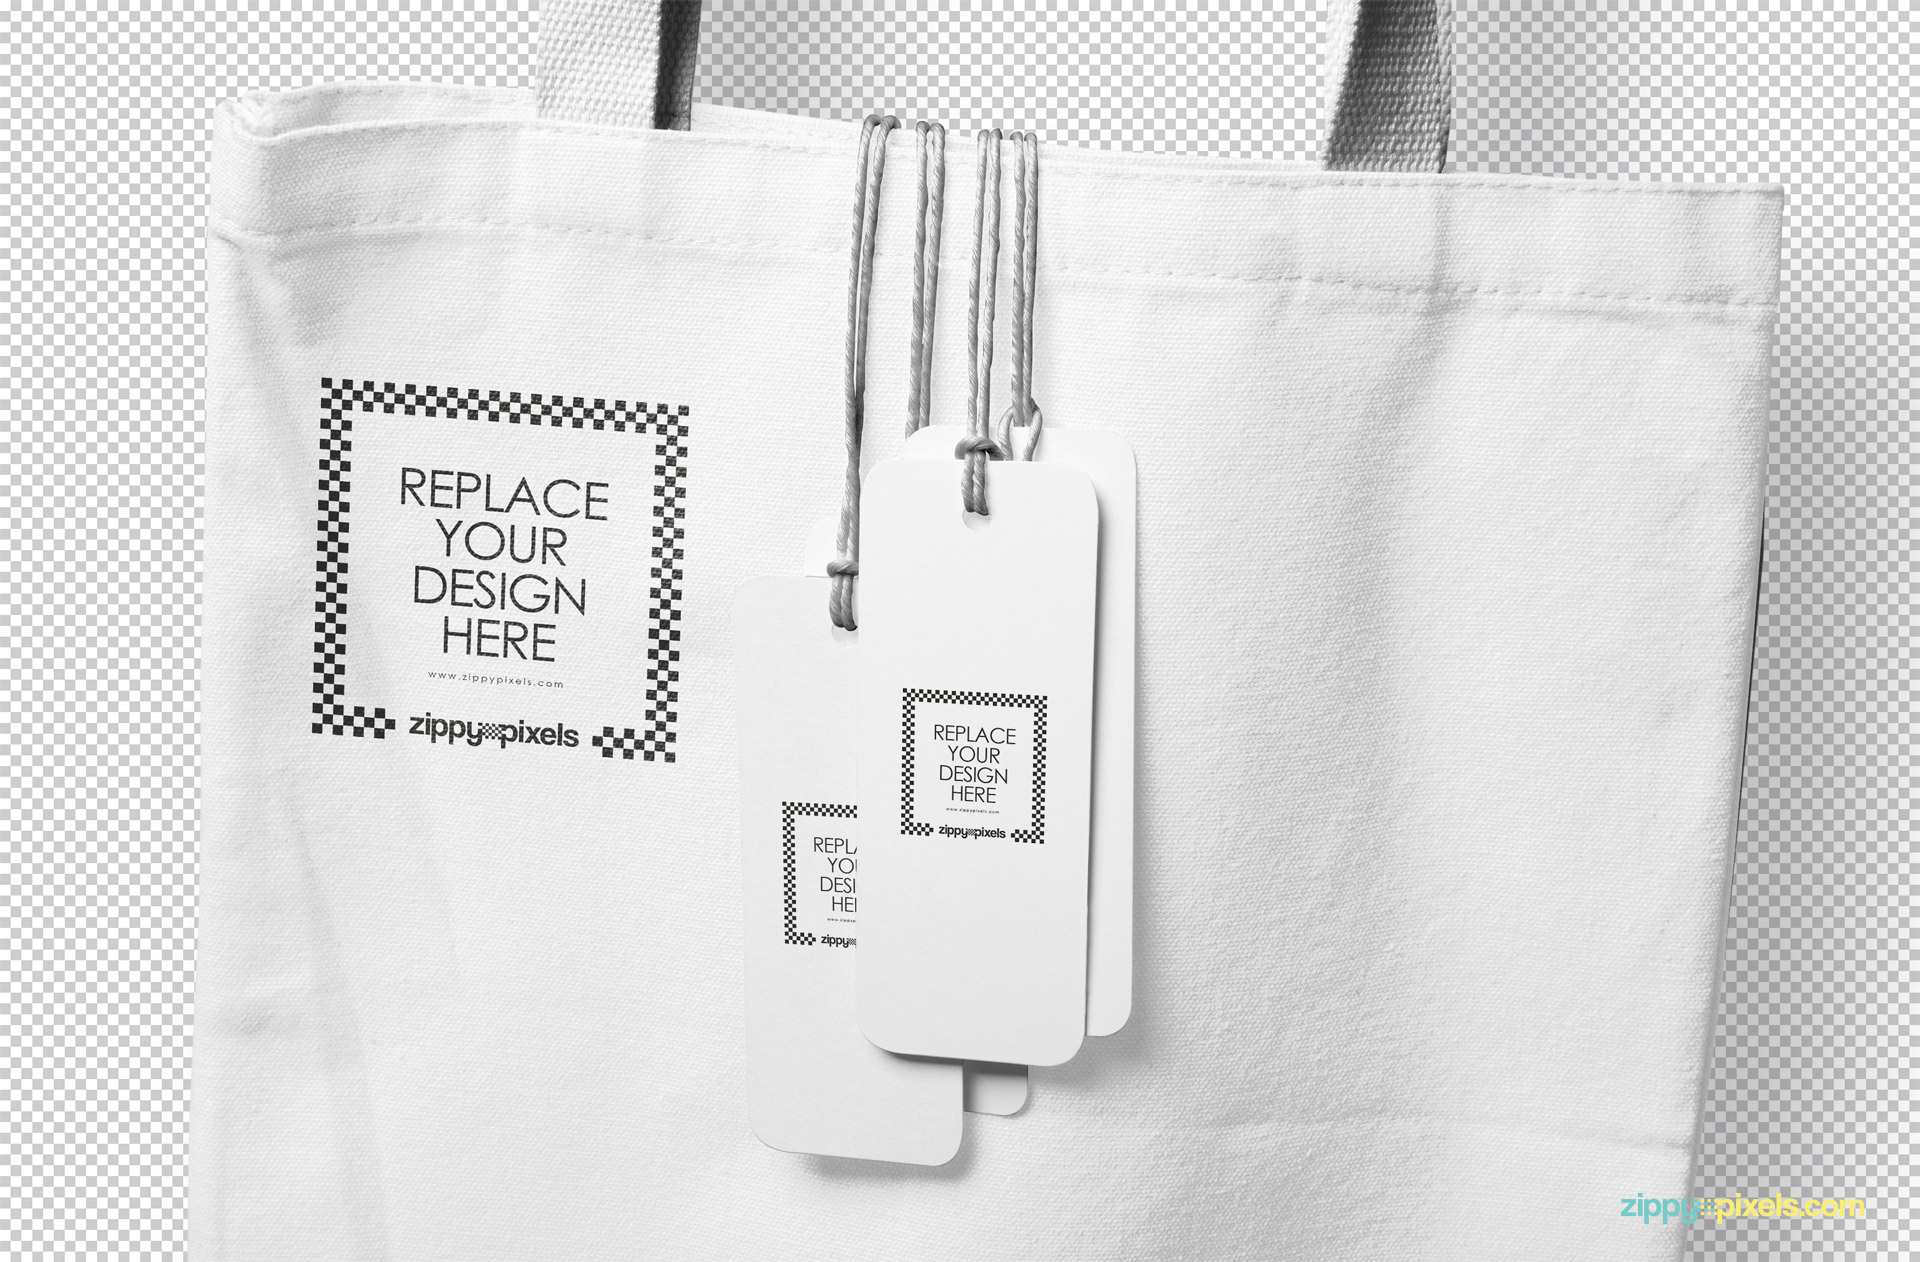 Use smart object to personalize tags and tote bag mockup with your designs.